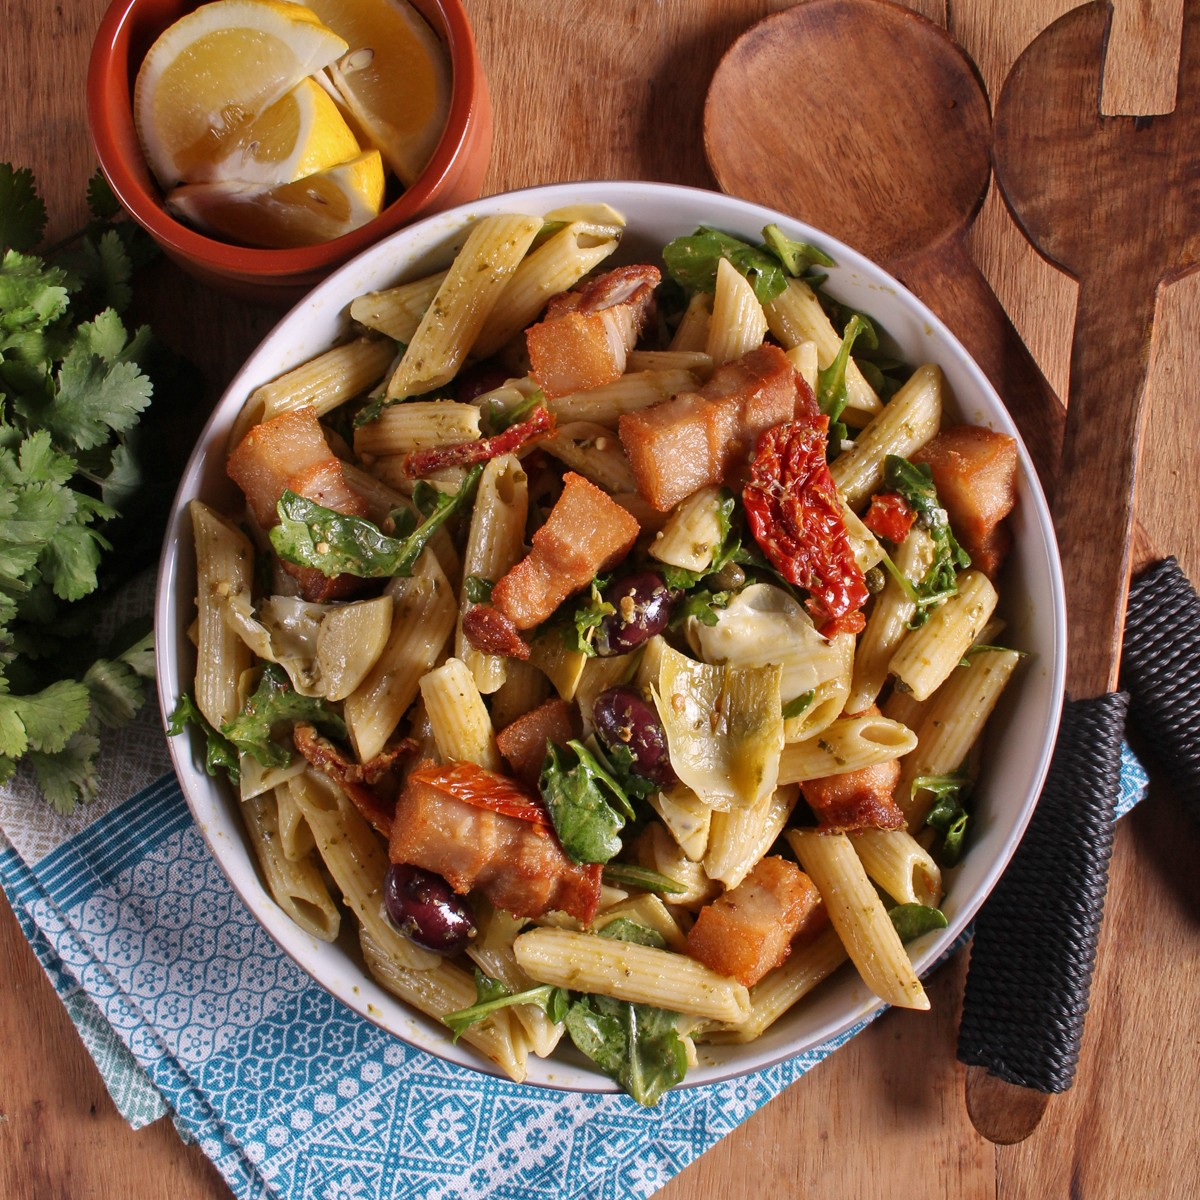 Mediterranean Pork Pasta Salad - SunPork Pork Belly